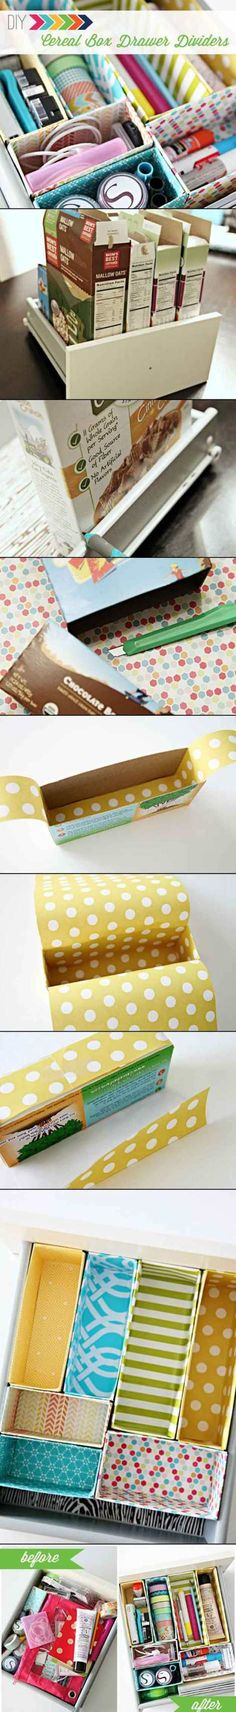 10 Creative Ideas To Re-Use Cereal Boxes